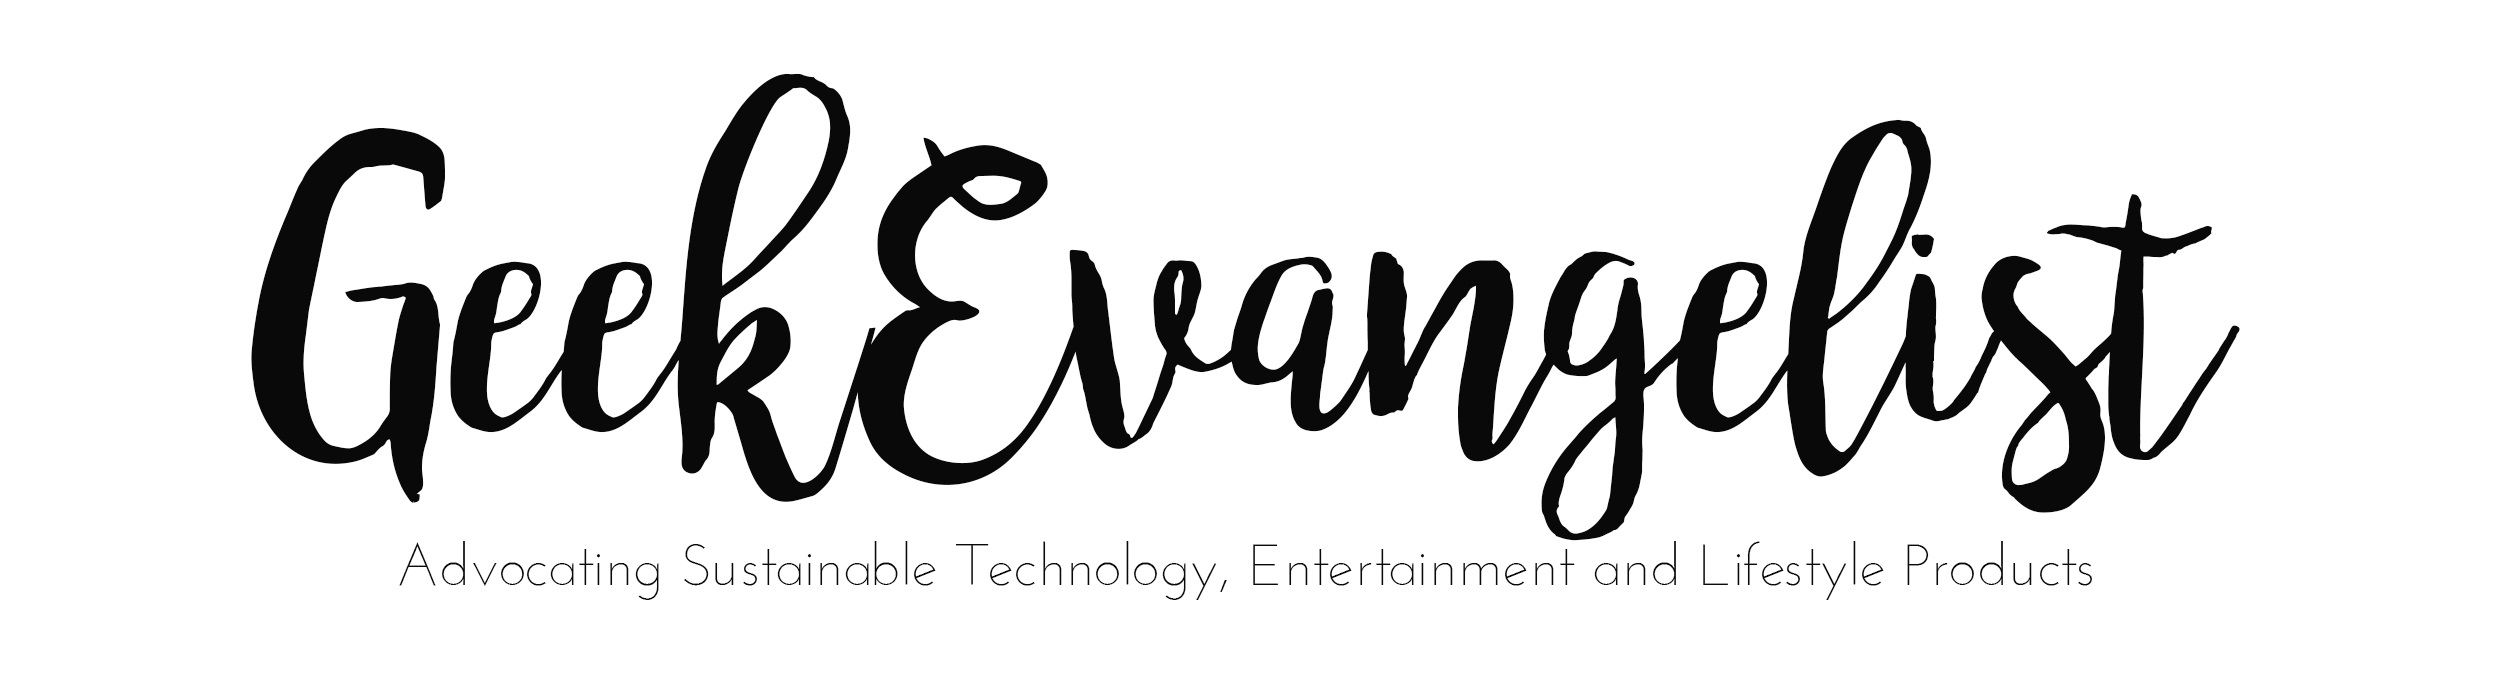 Geekevangelist - Advocating Sustainable Technology, Entertainment and LifeStyle Products